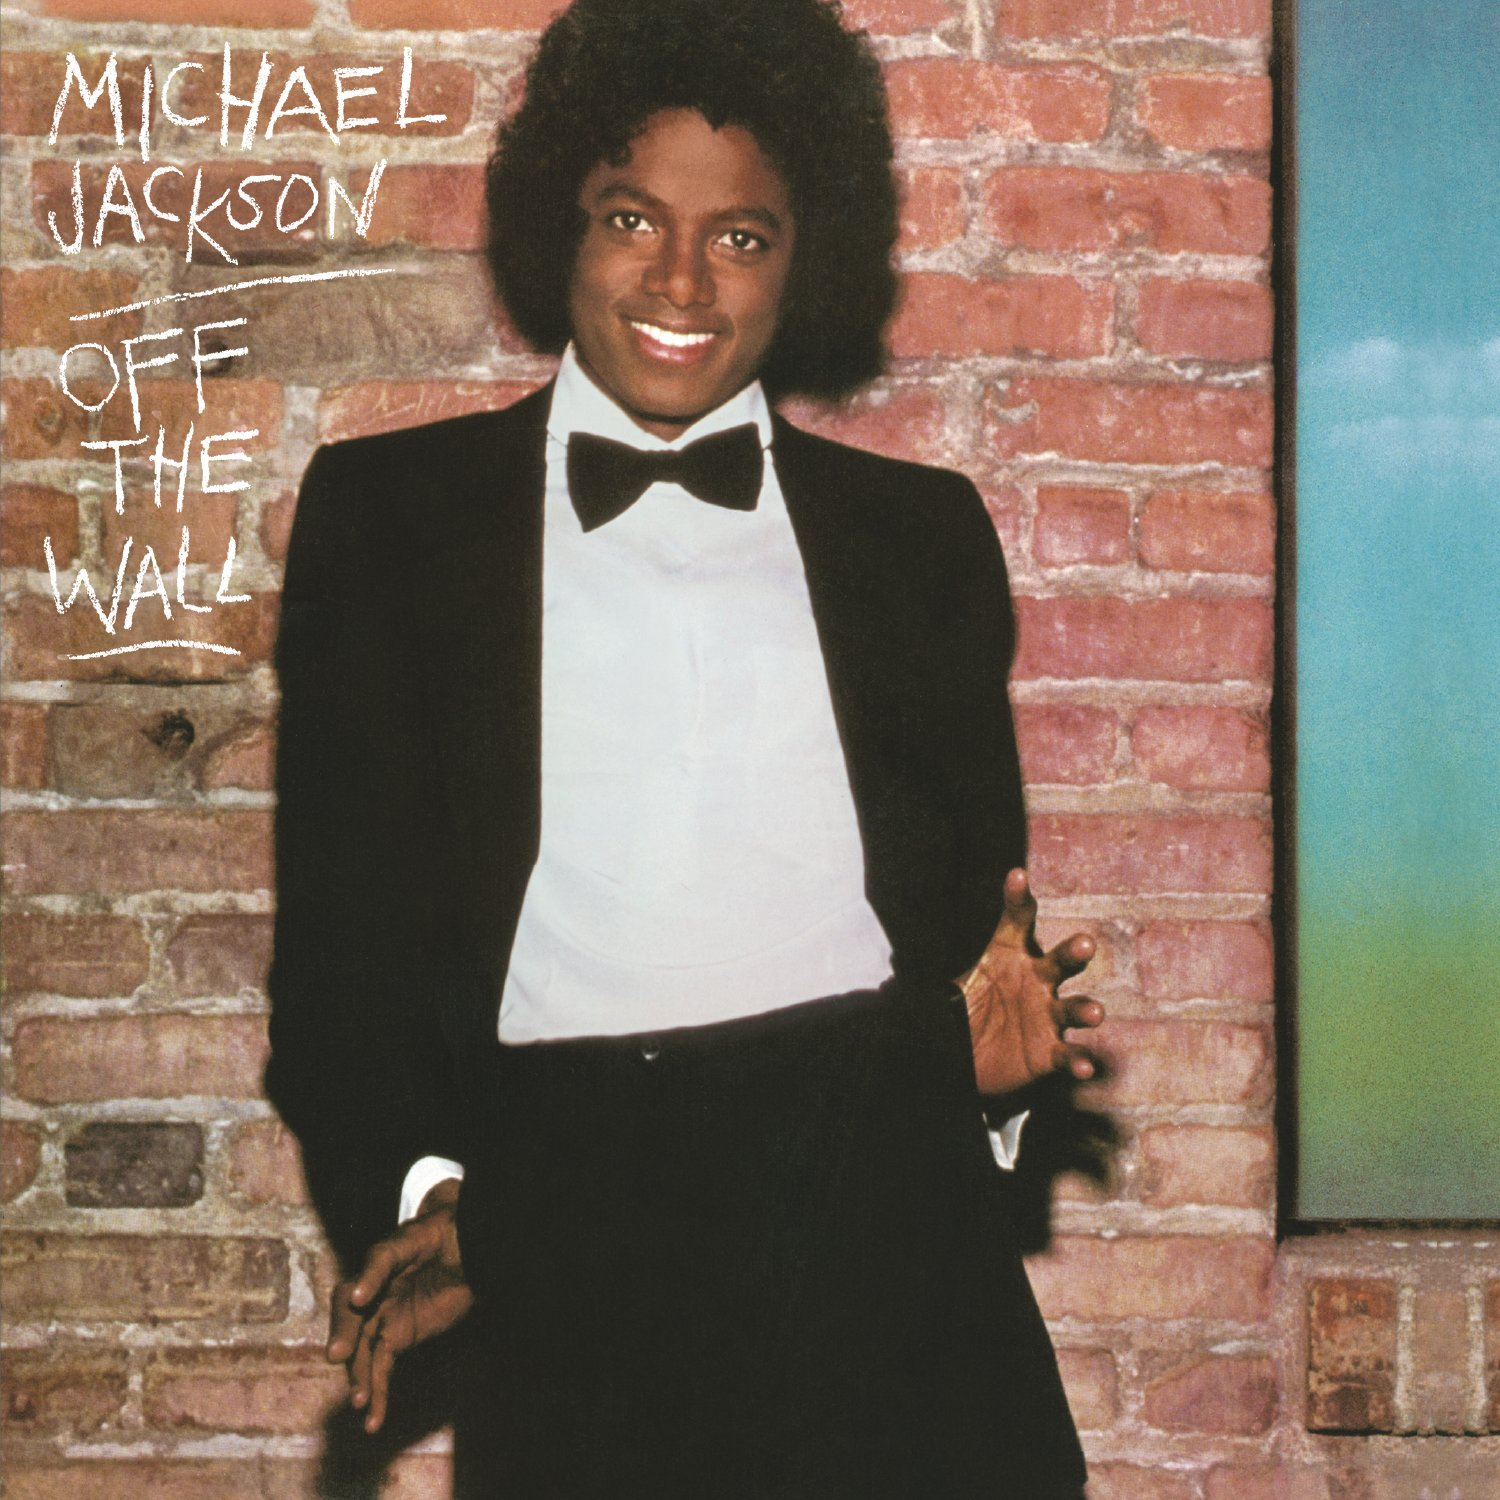 Vinilo : Michael Jackson - Off The Wall (Gatefold LP Jacket)